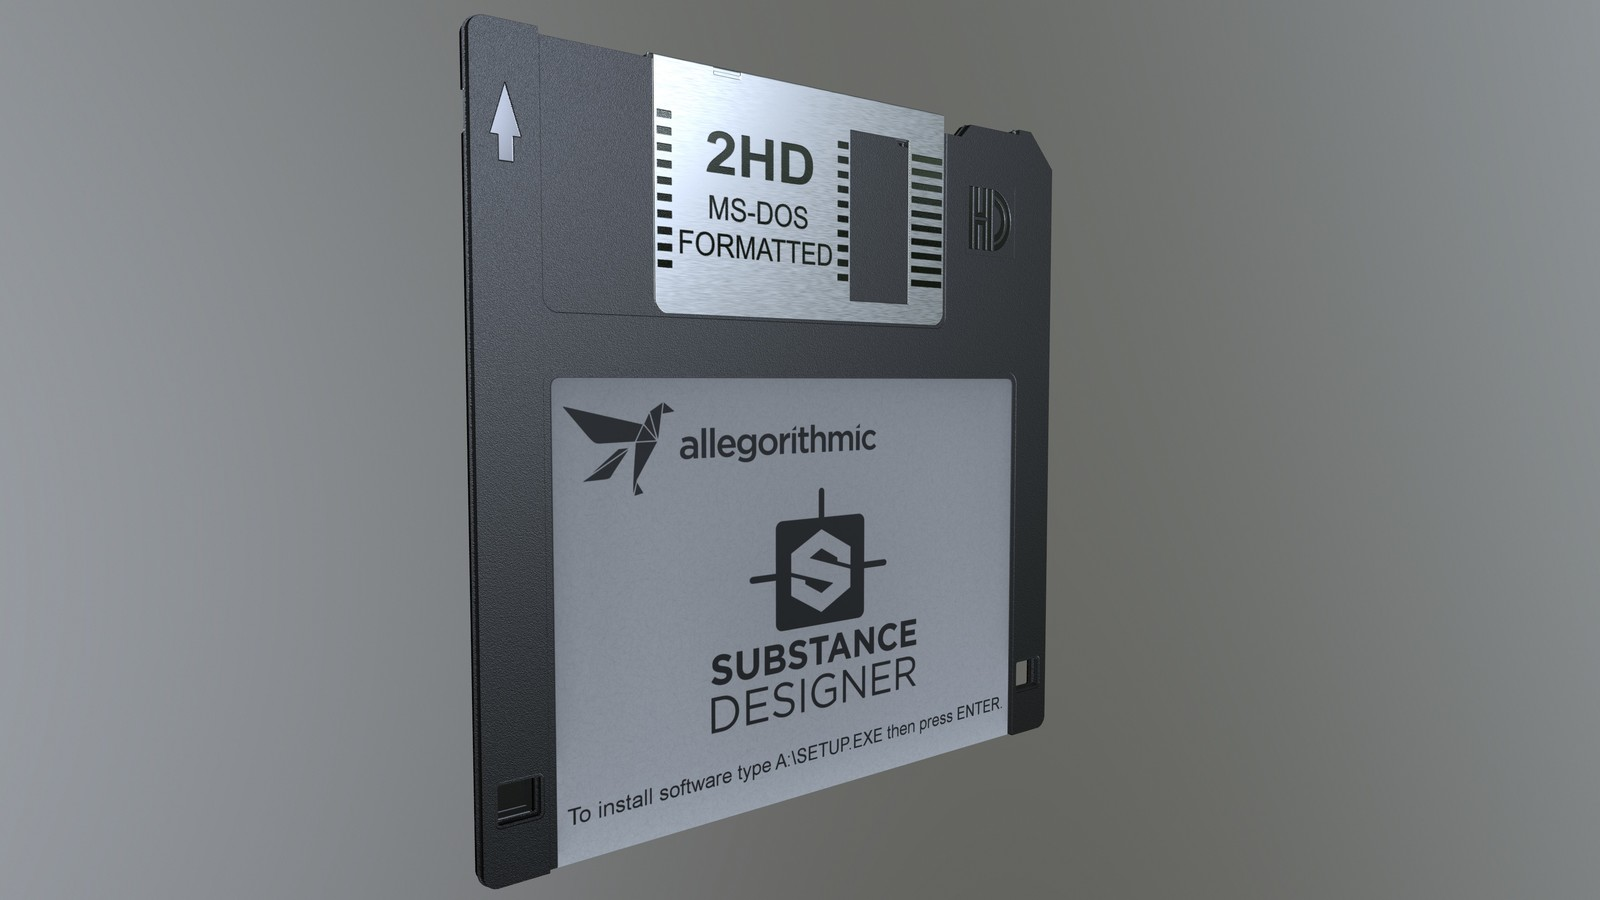 Substance Designer Floppy Disk